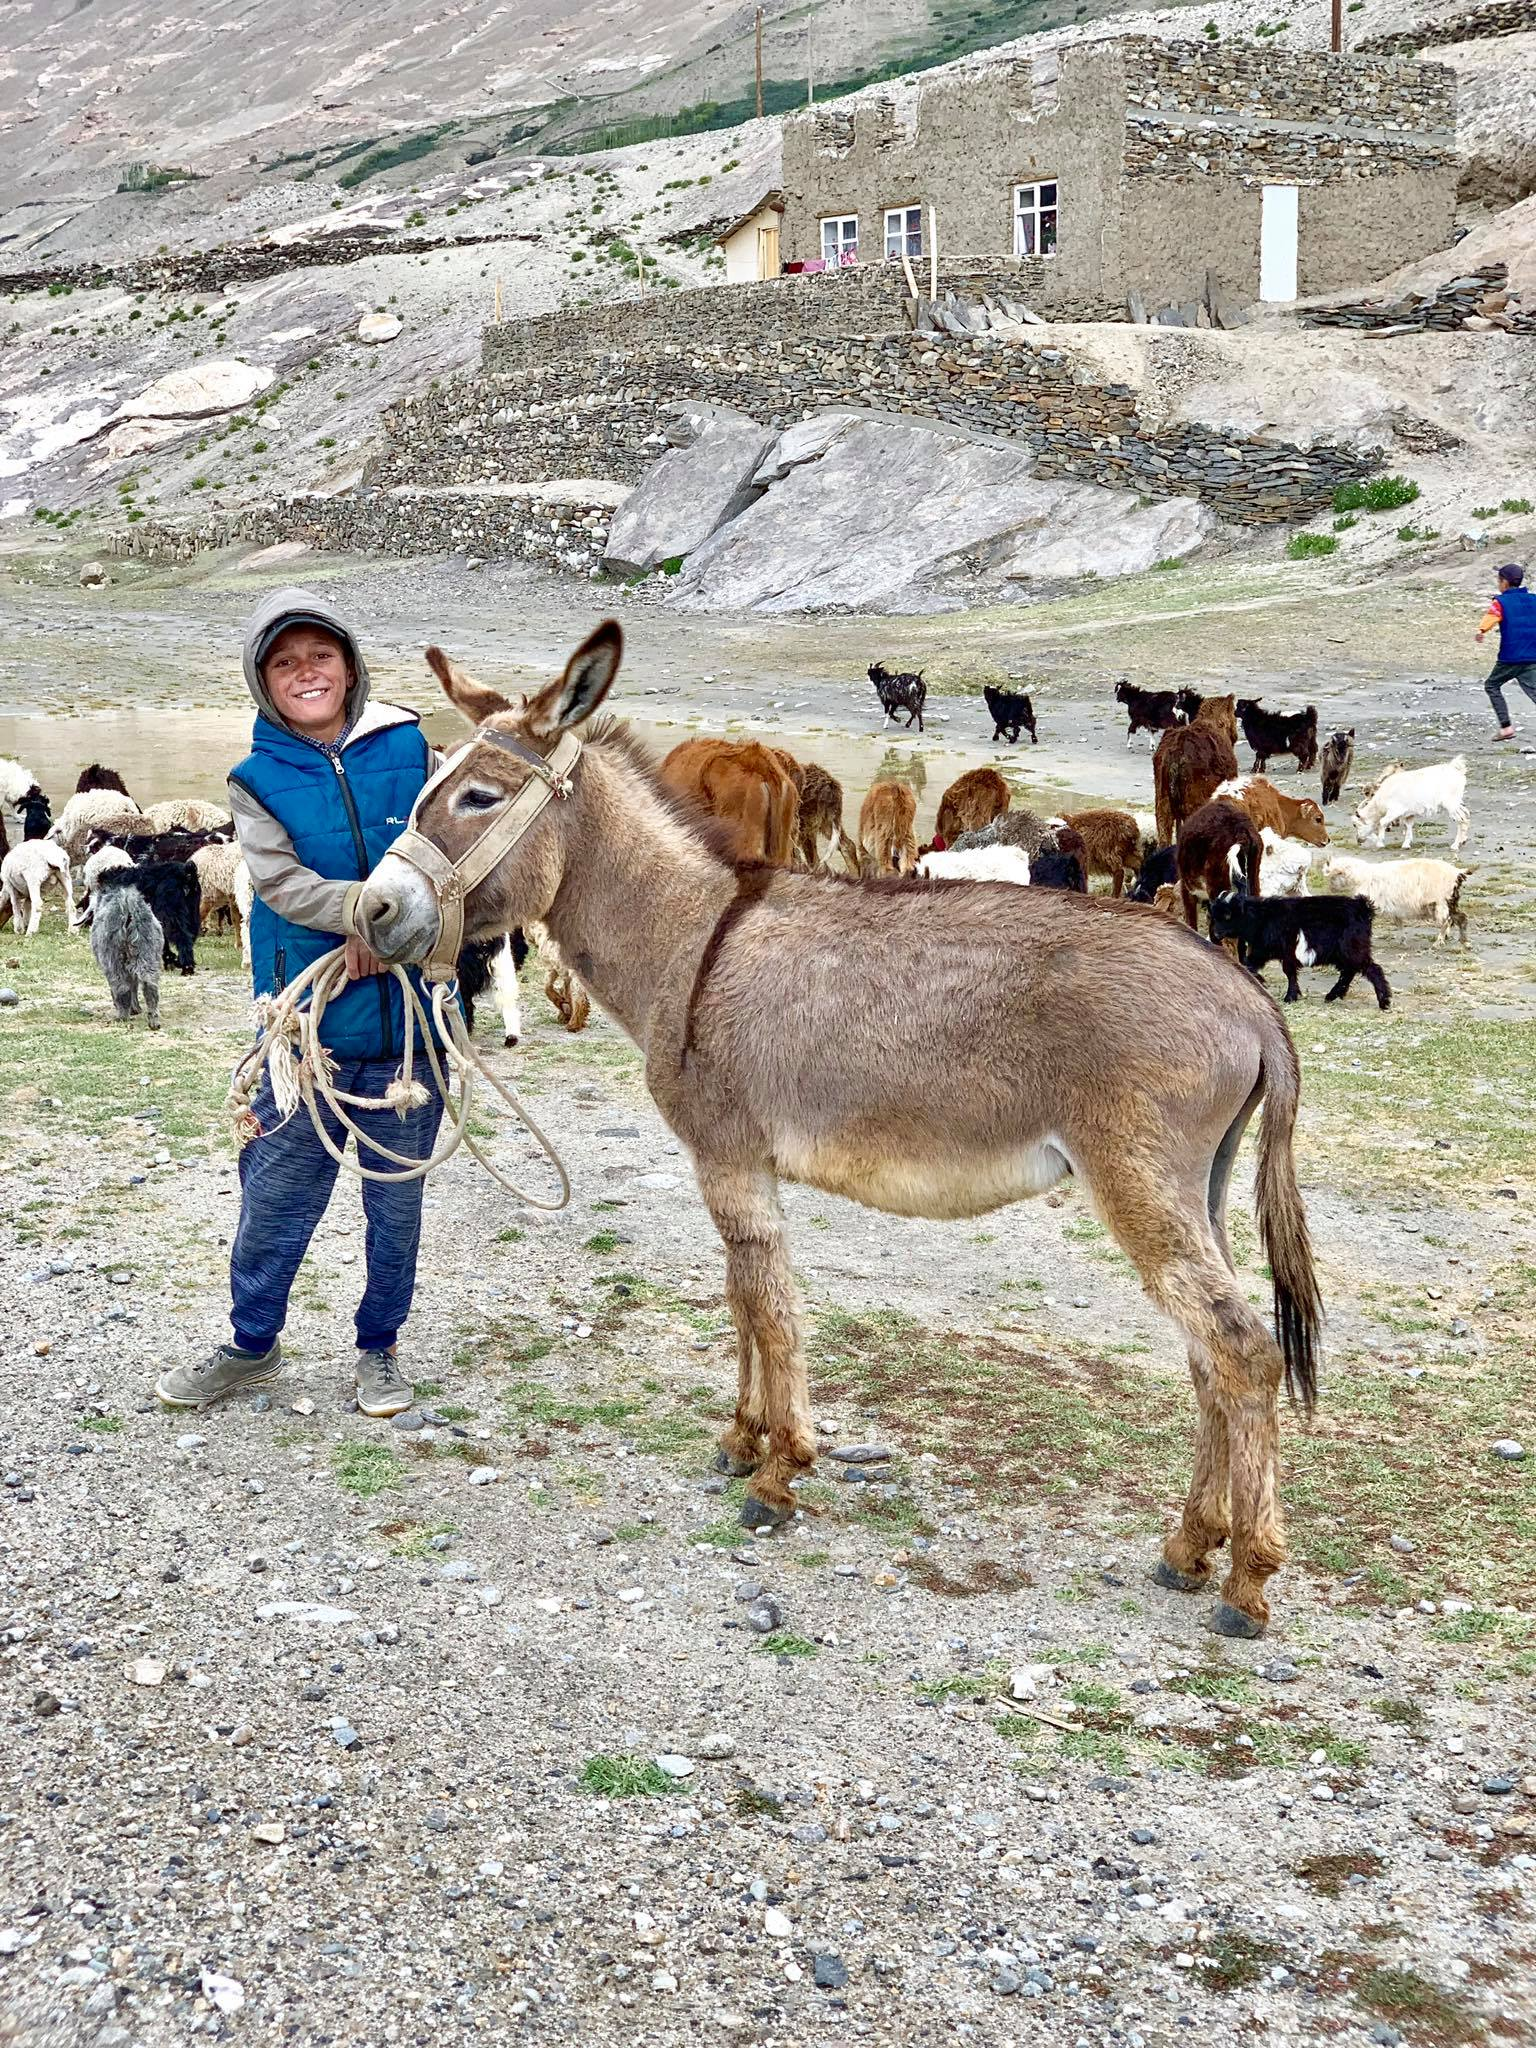 Kach Solo Travels in 2019 Driving from Ishkashim to Wakhan Valley6.jpg